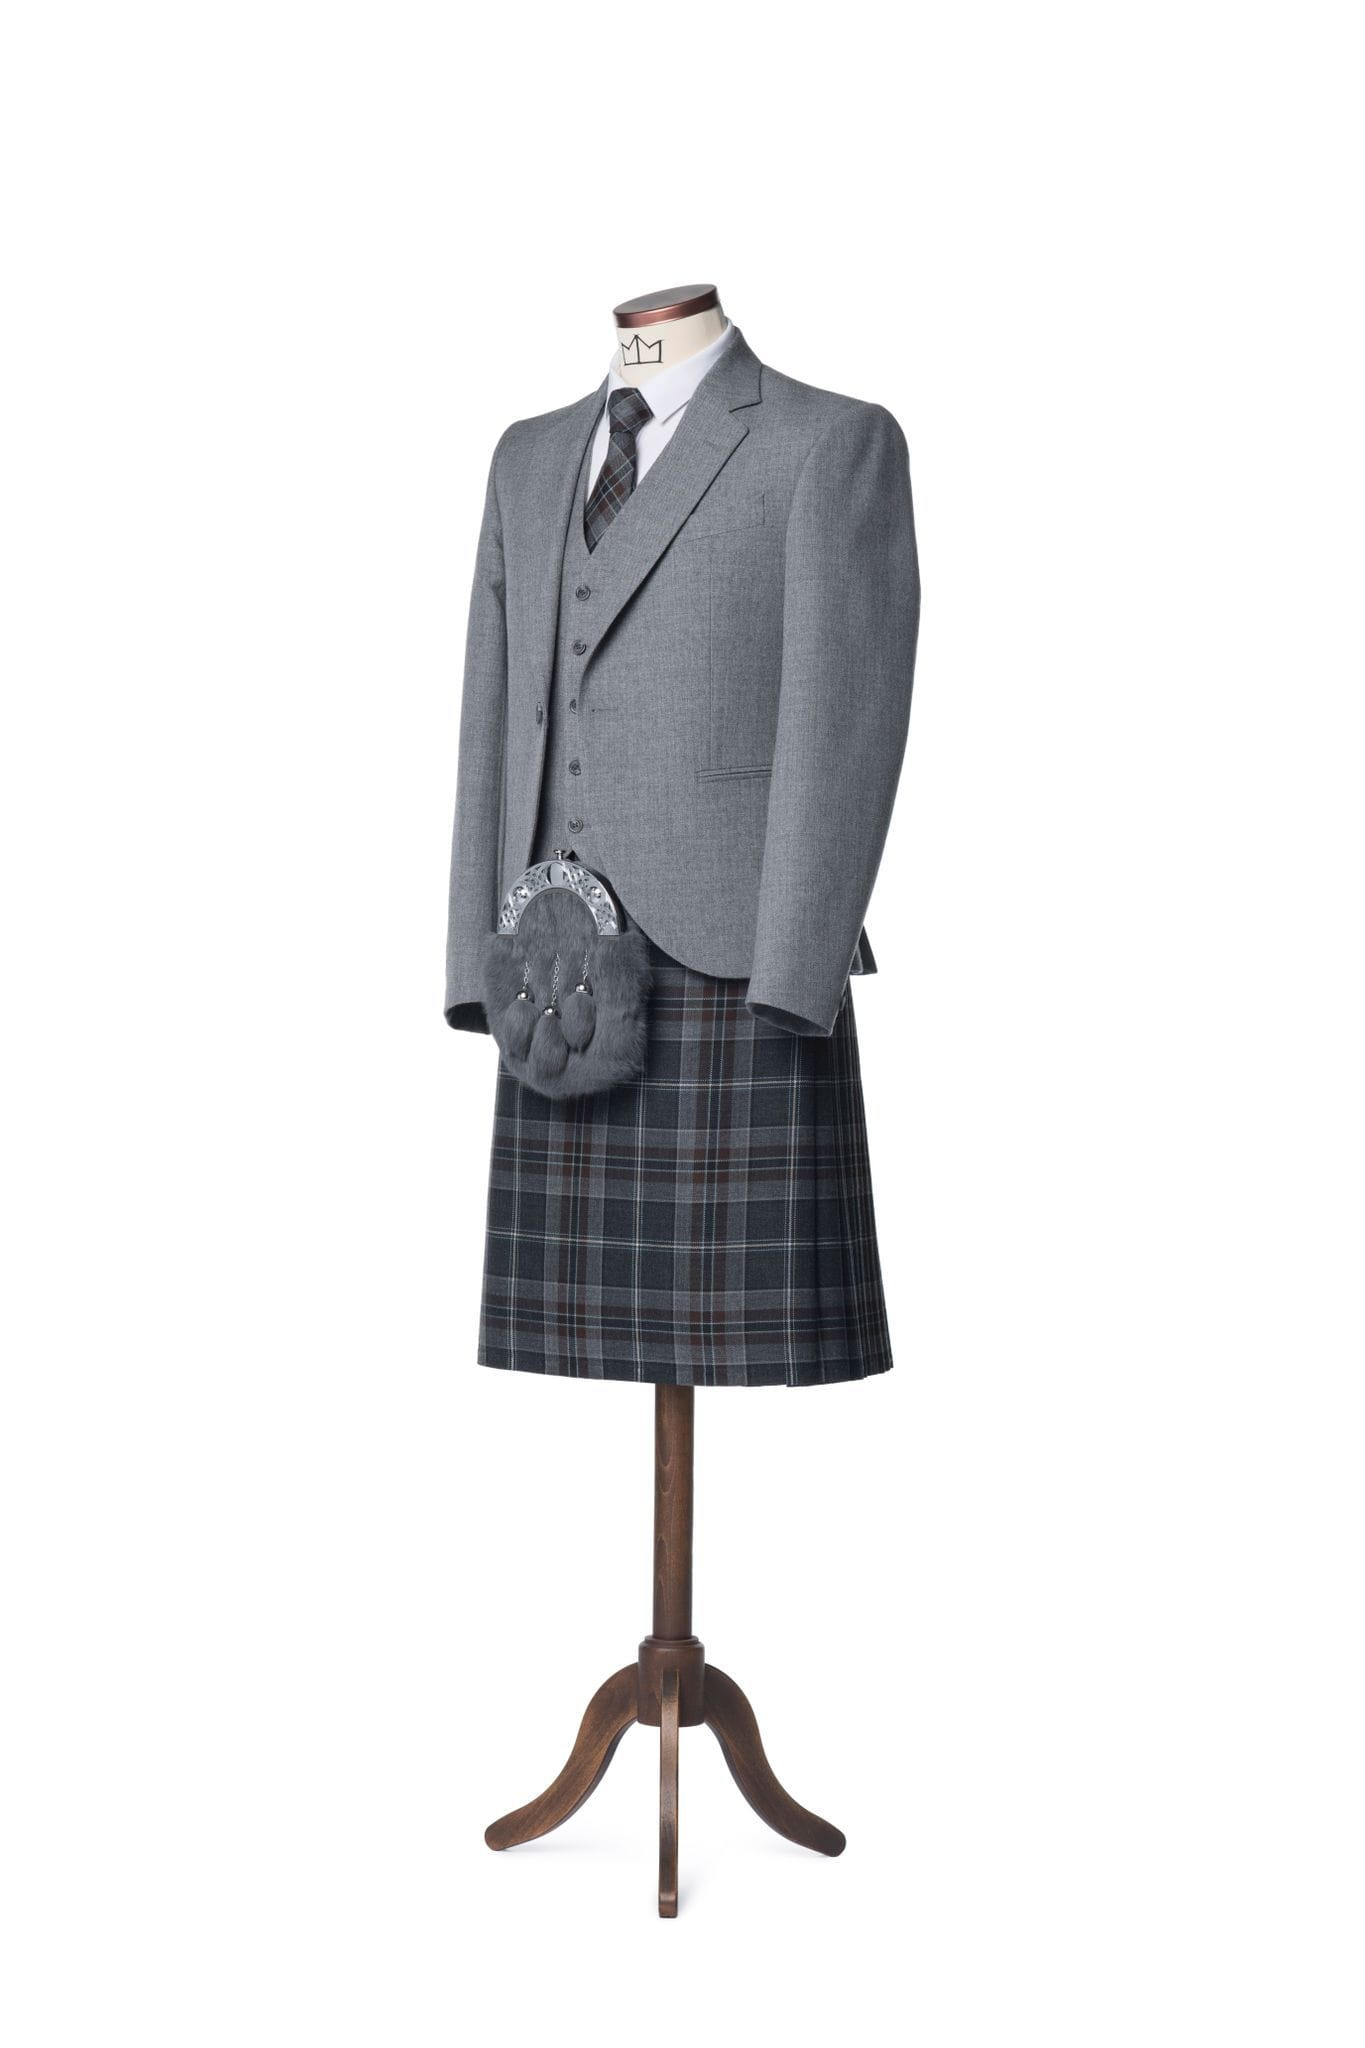 macgregorandmacduff Kilt Outfit Lomond Grey Tweed Package - Choose Your Tartan